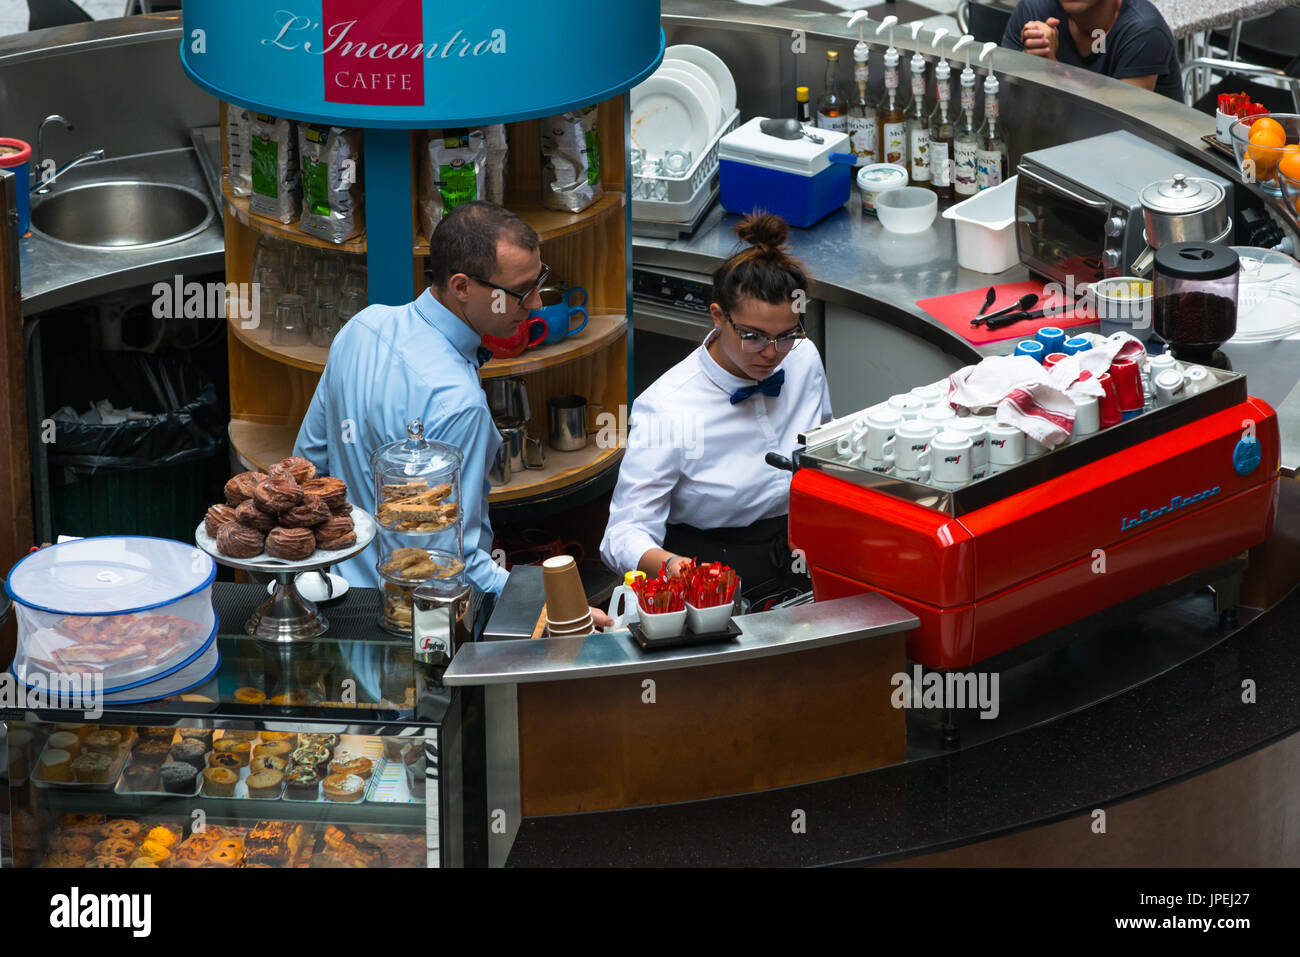 Waiters at cafe in Adelaide Arcade, Rundle Street Mall, Adelaide, South Australia. - Stock Image